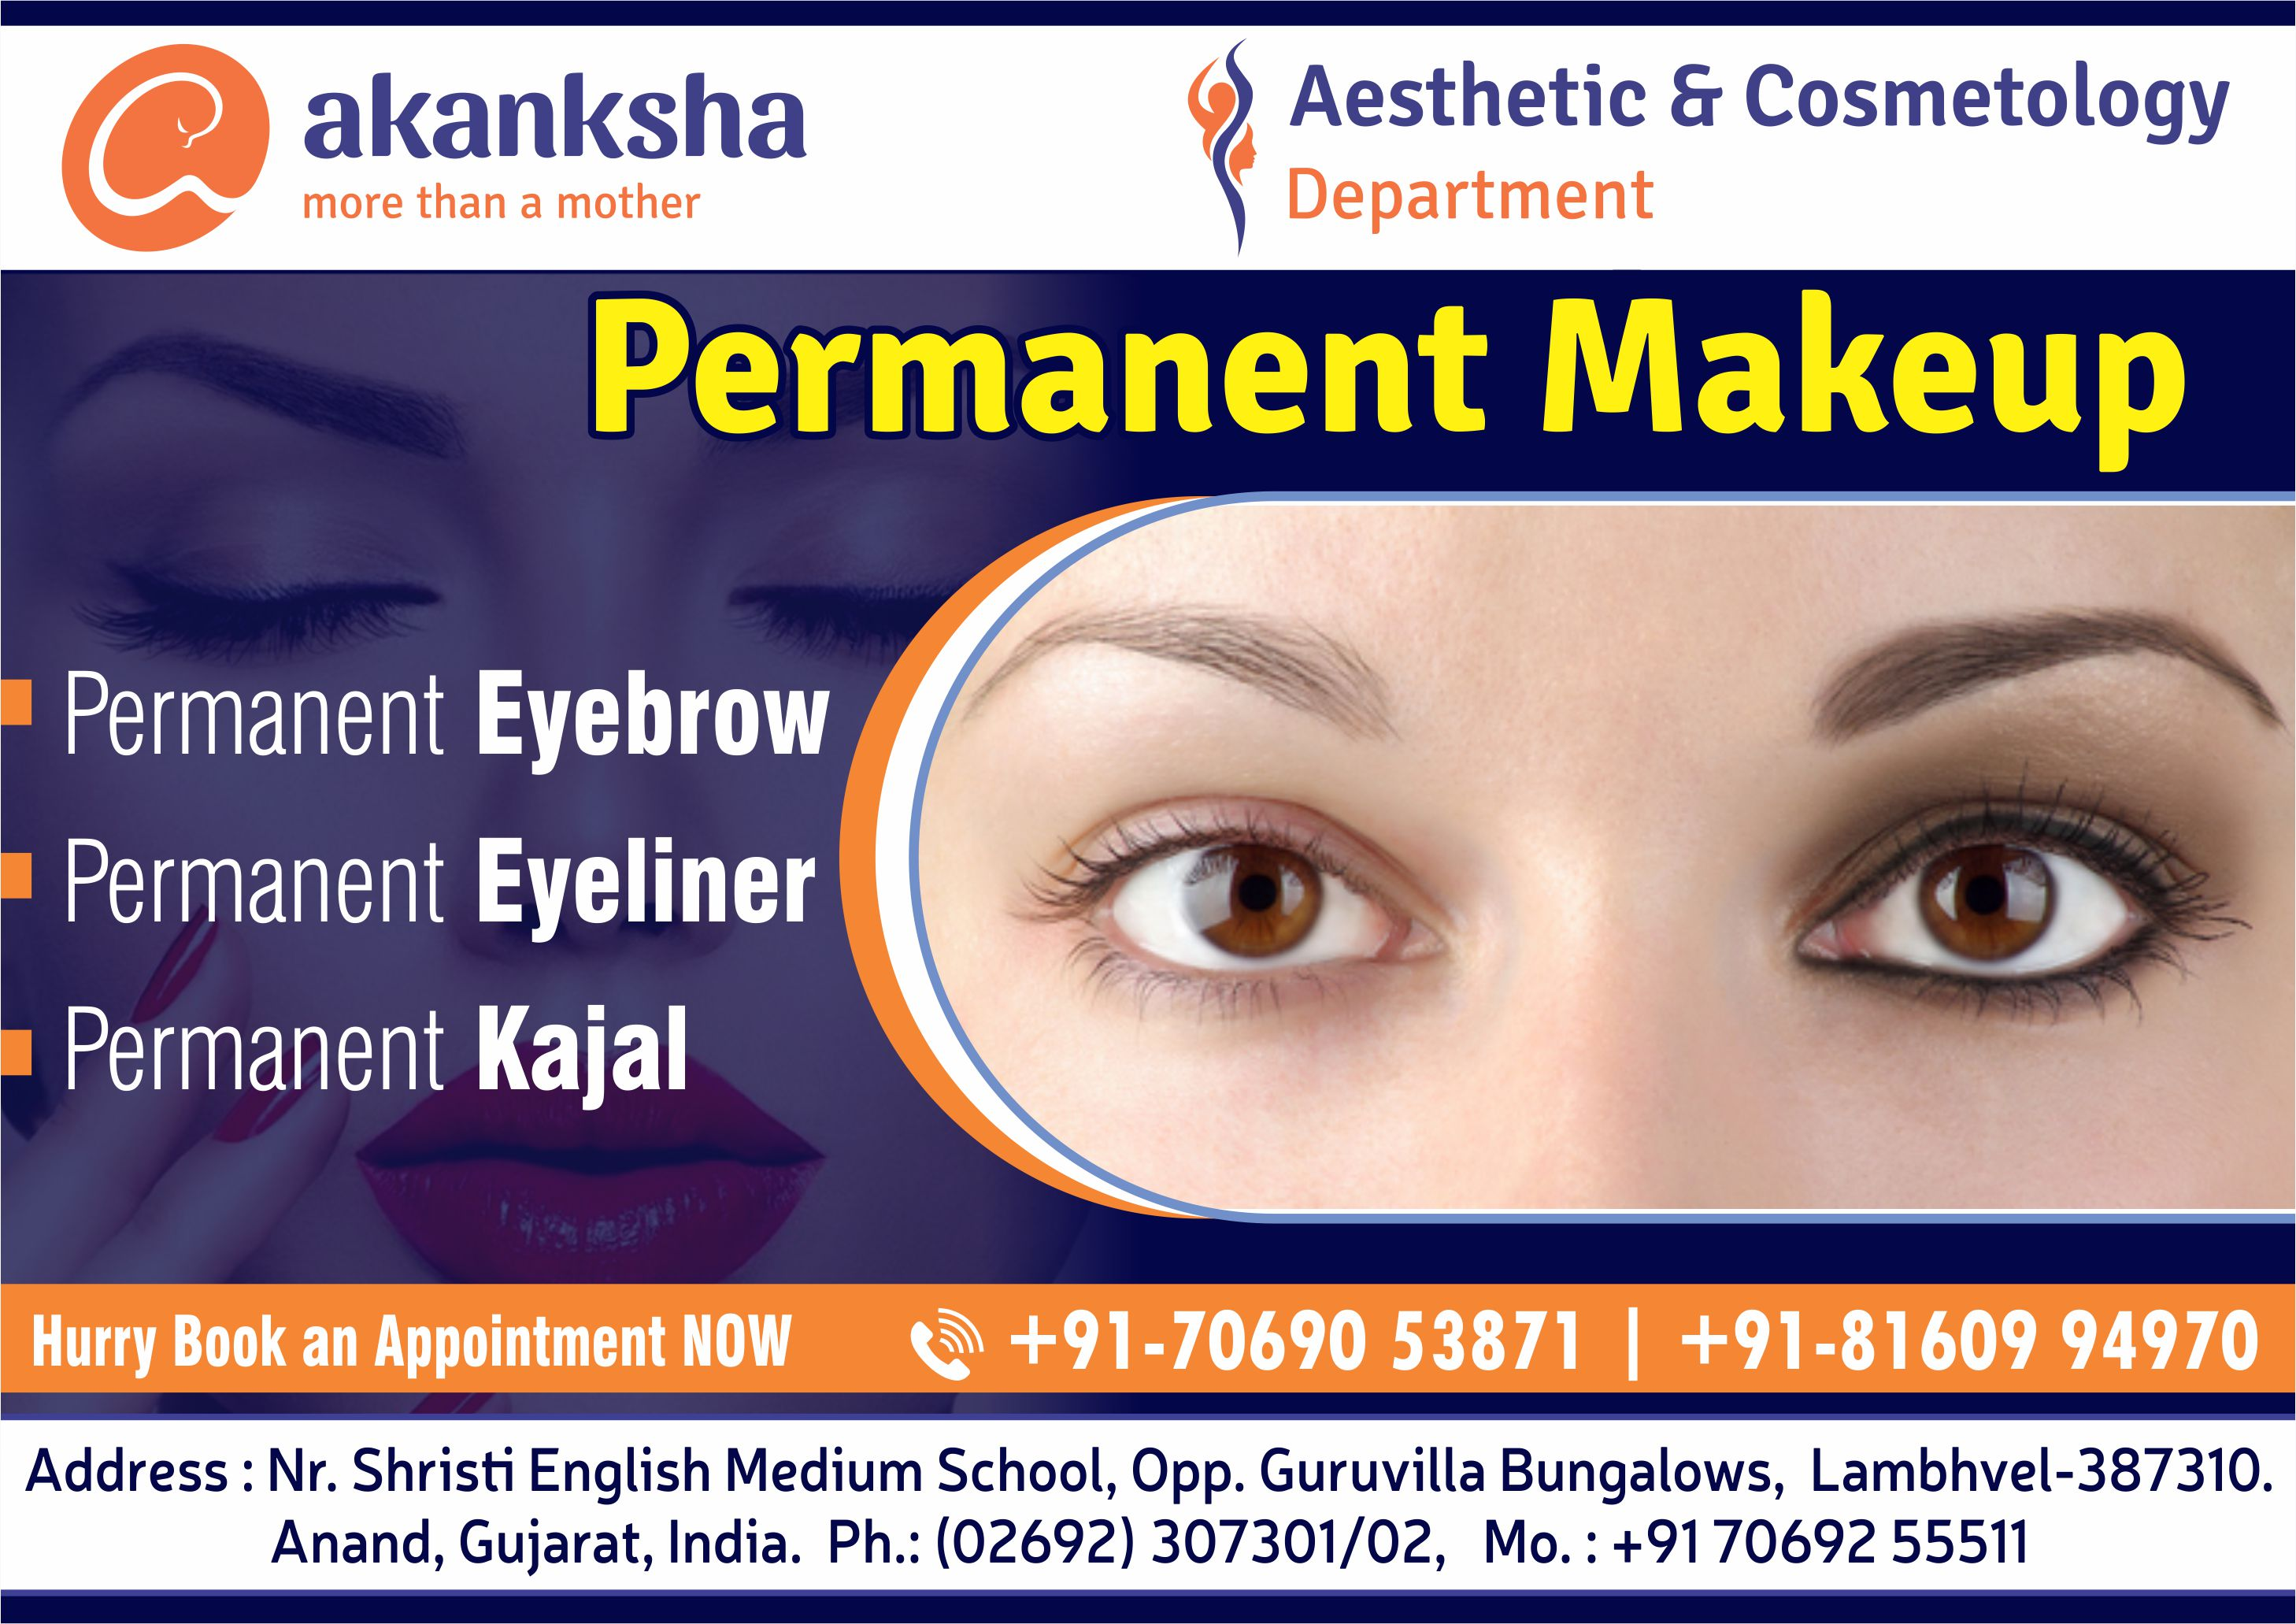 Permanent Makeup like Permanent Eyebrow, Permanent Eyeliner and Permanent Kajal at Akanksha Hospital